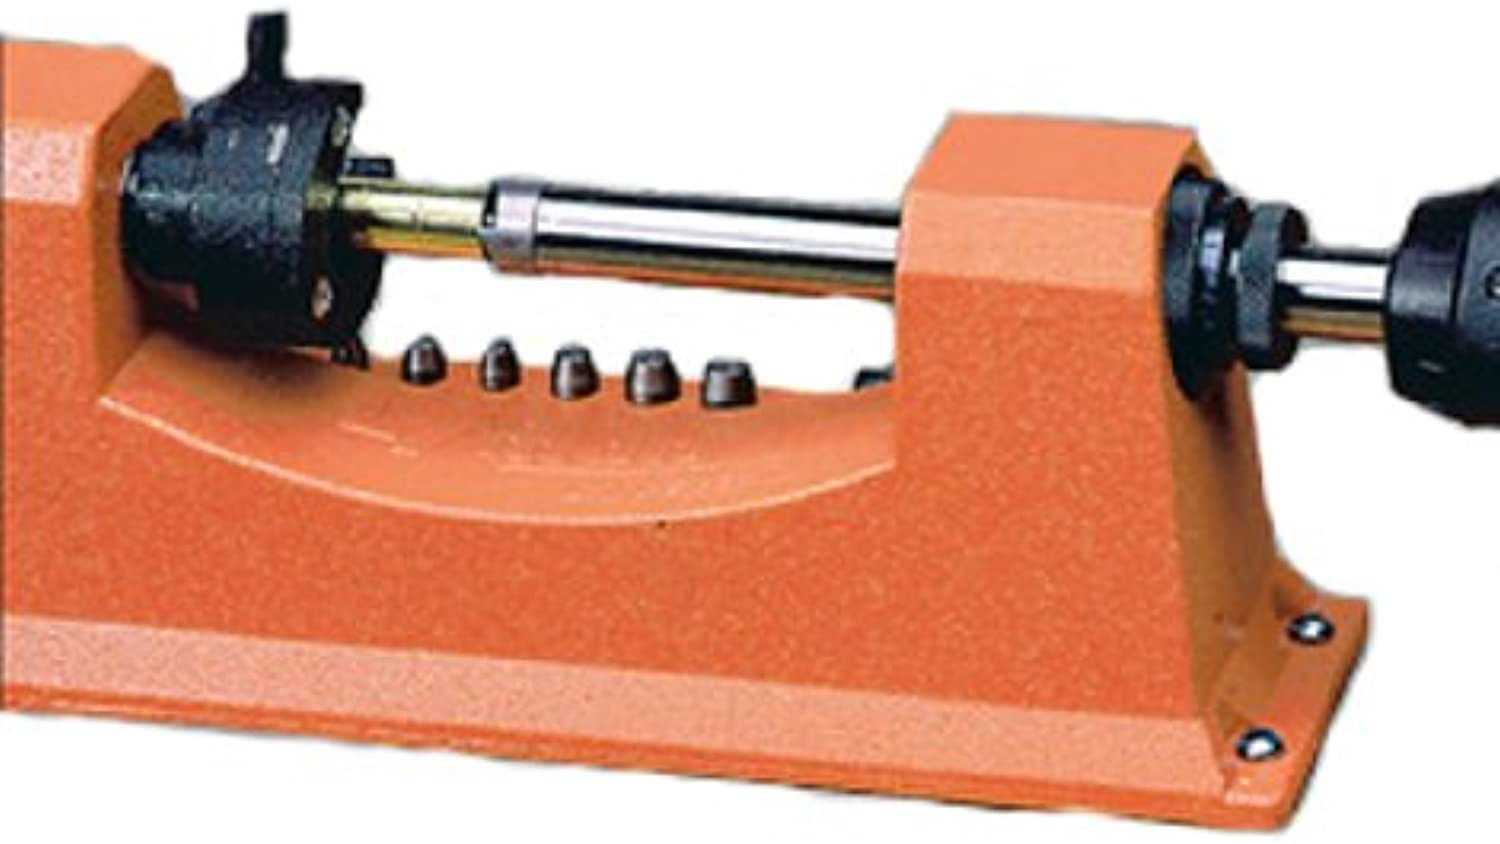 Lyman Power Adapter for Lyman Trimmers